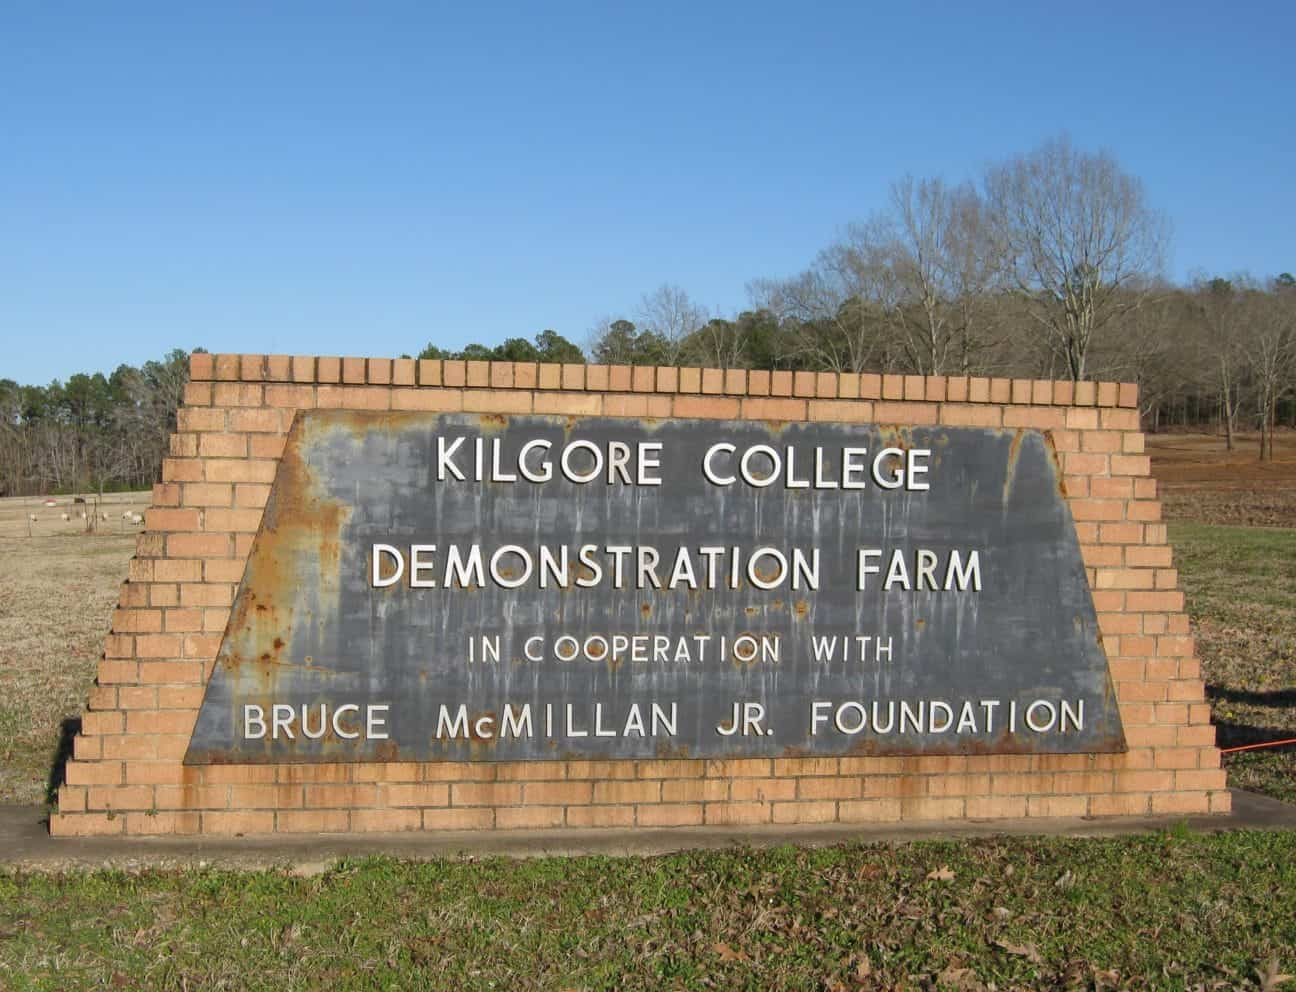 Kids can learn about working a real farm on the Kilgore College Demonstration Farm, where I live